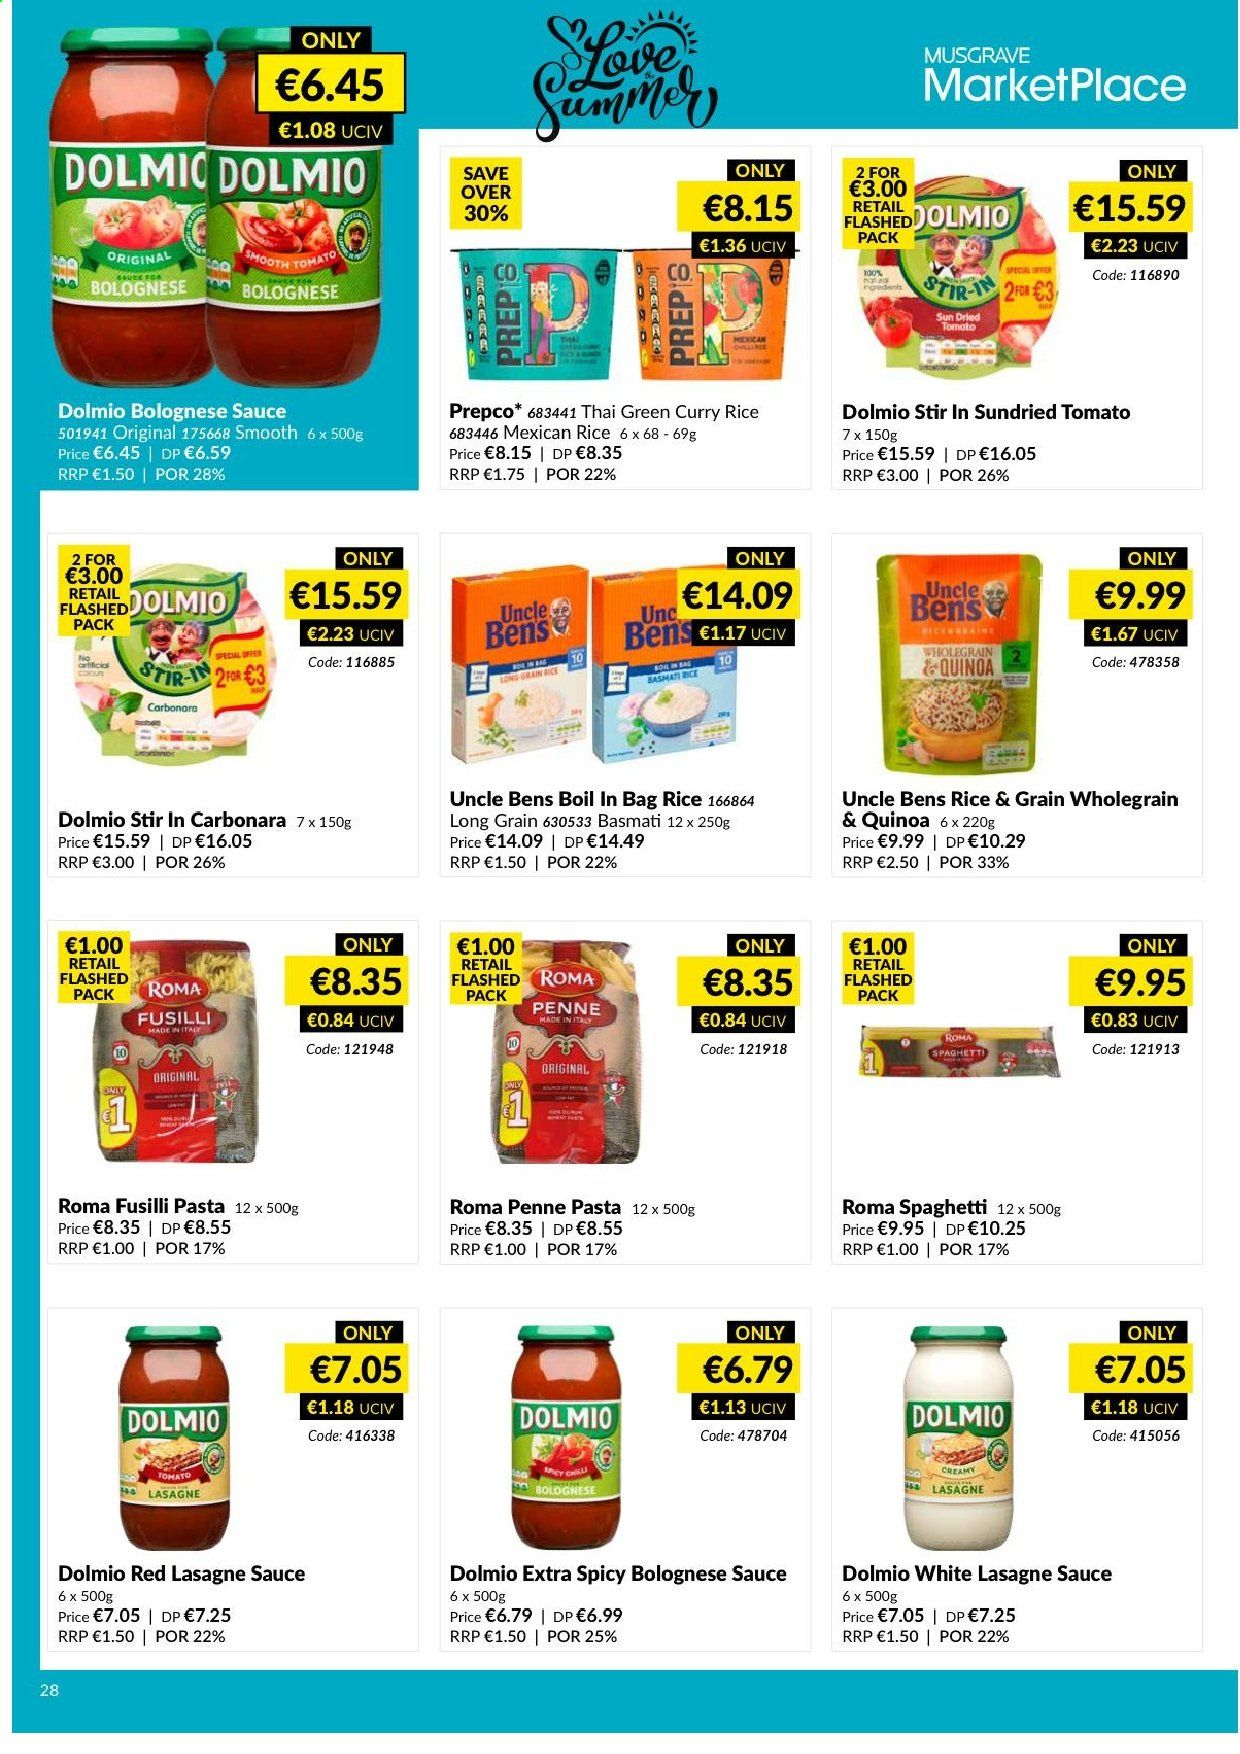 MUSGRAVE Market Place offer  - 9.6.2019 - 6.7.2019 - Sales products - tomatoes, curry, sauce, basmati rice, lasagne, quinoa, rice, spaghetti, pasta, sun dried tomato. Page 33.